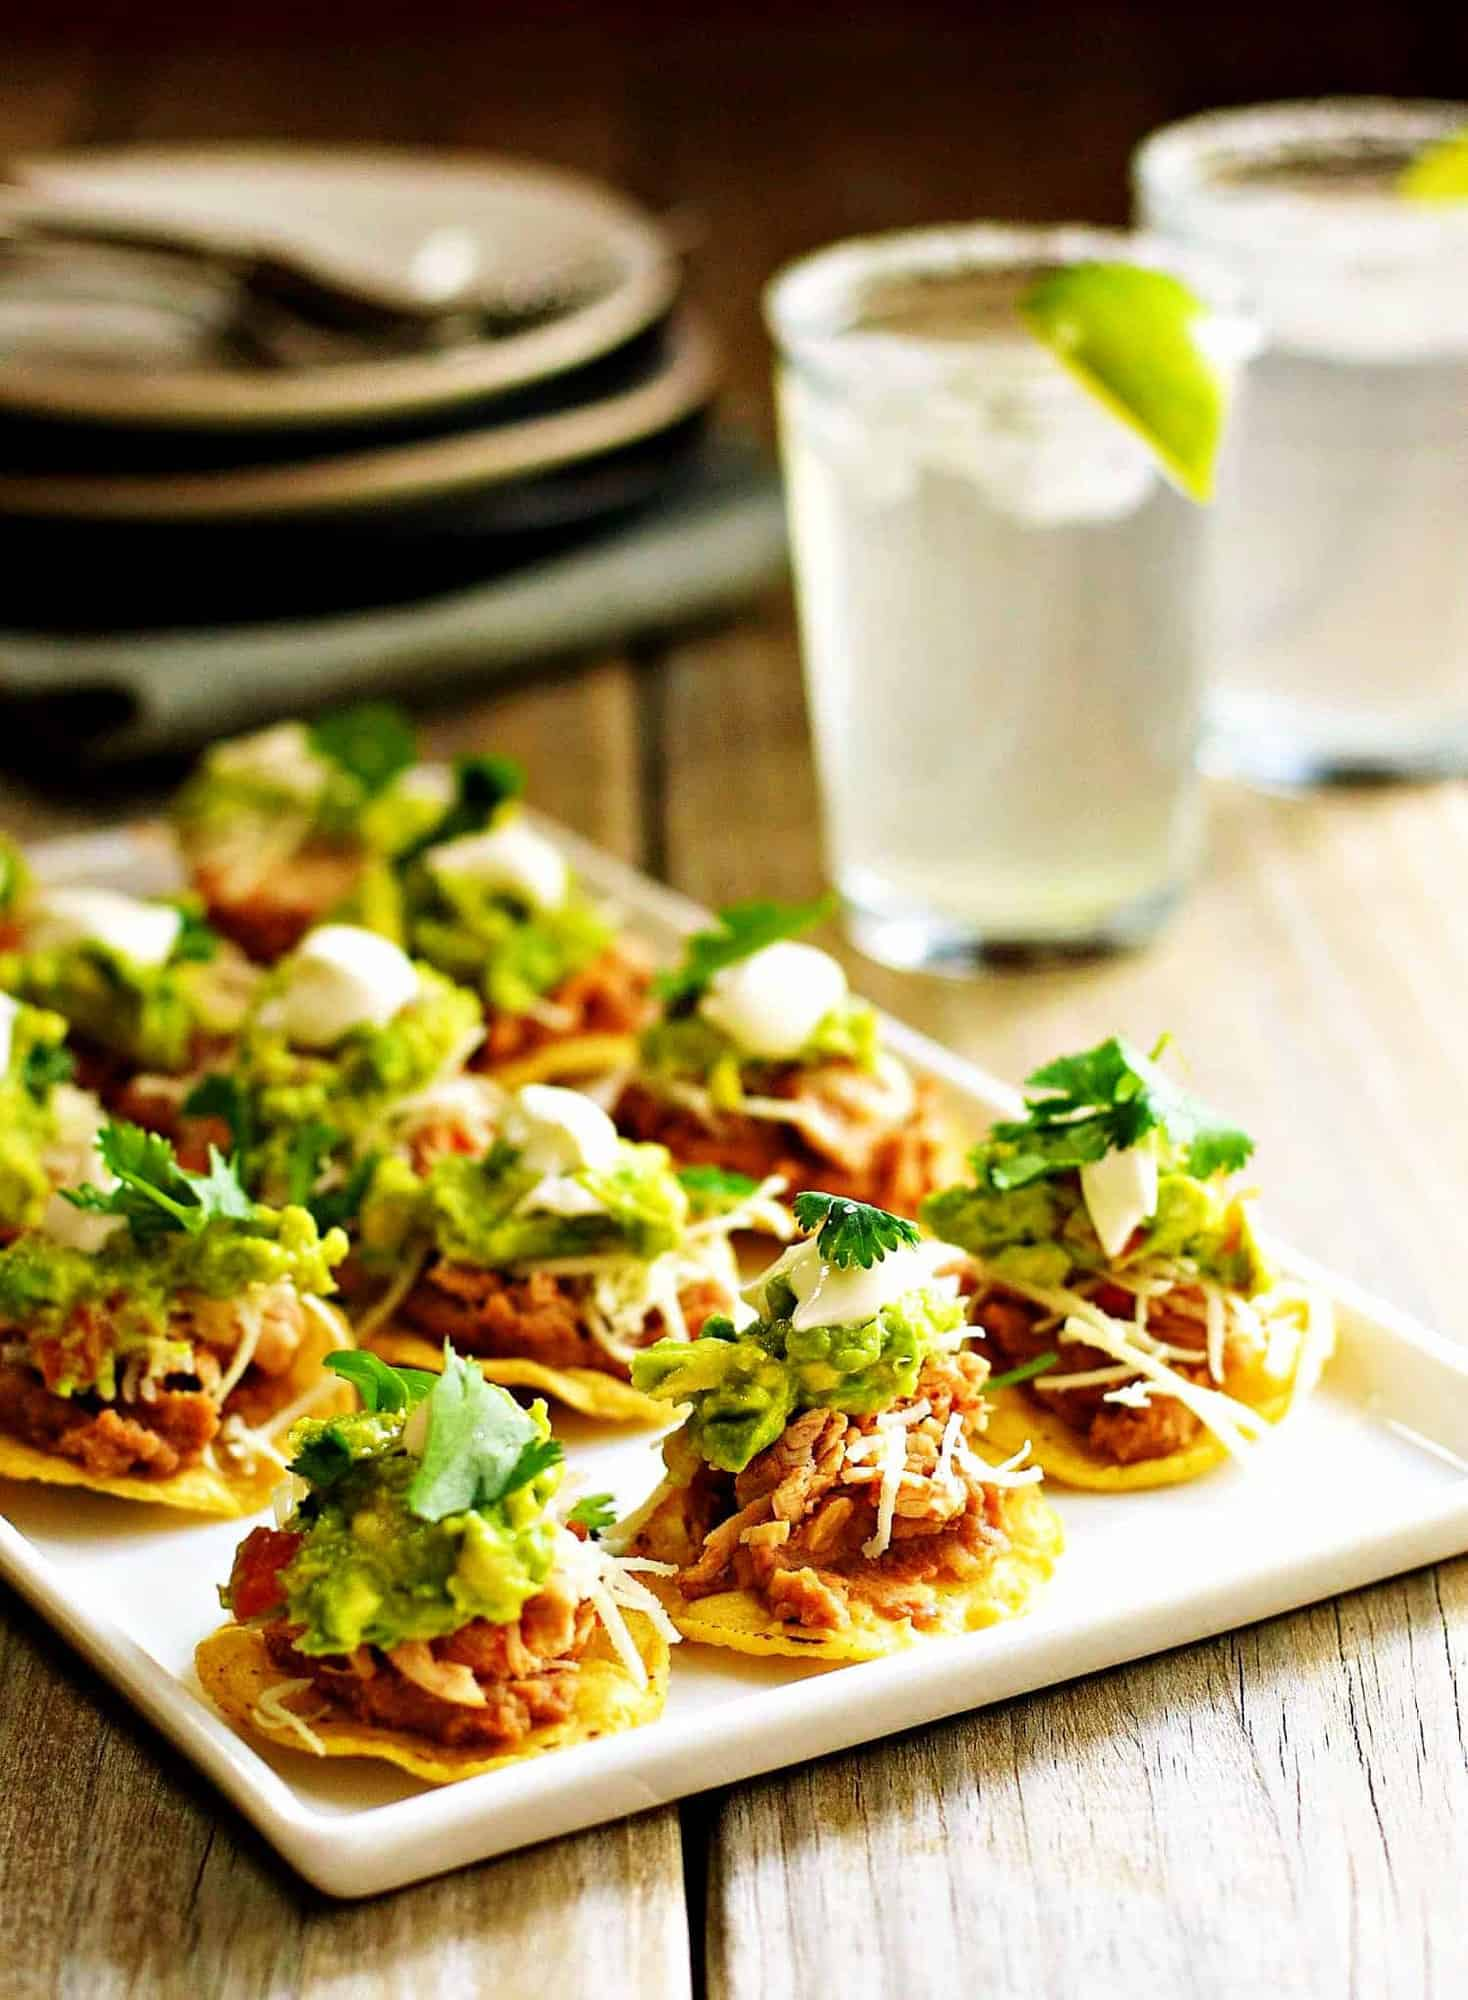 Mini-Chicken-Tostadas-served on-a-platter